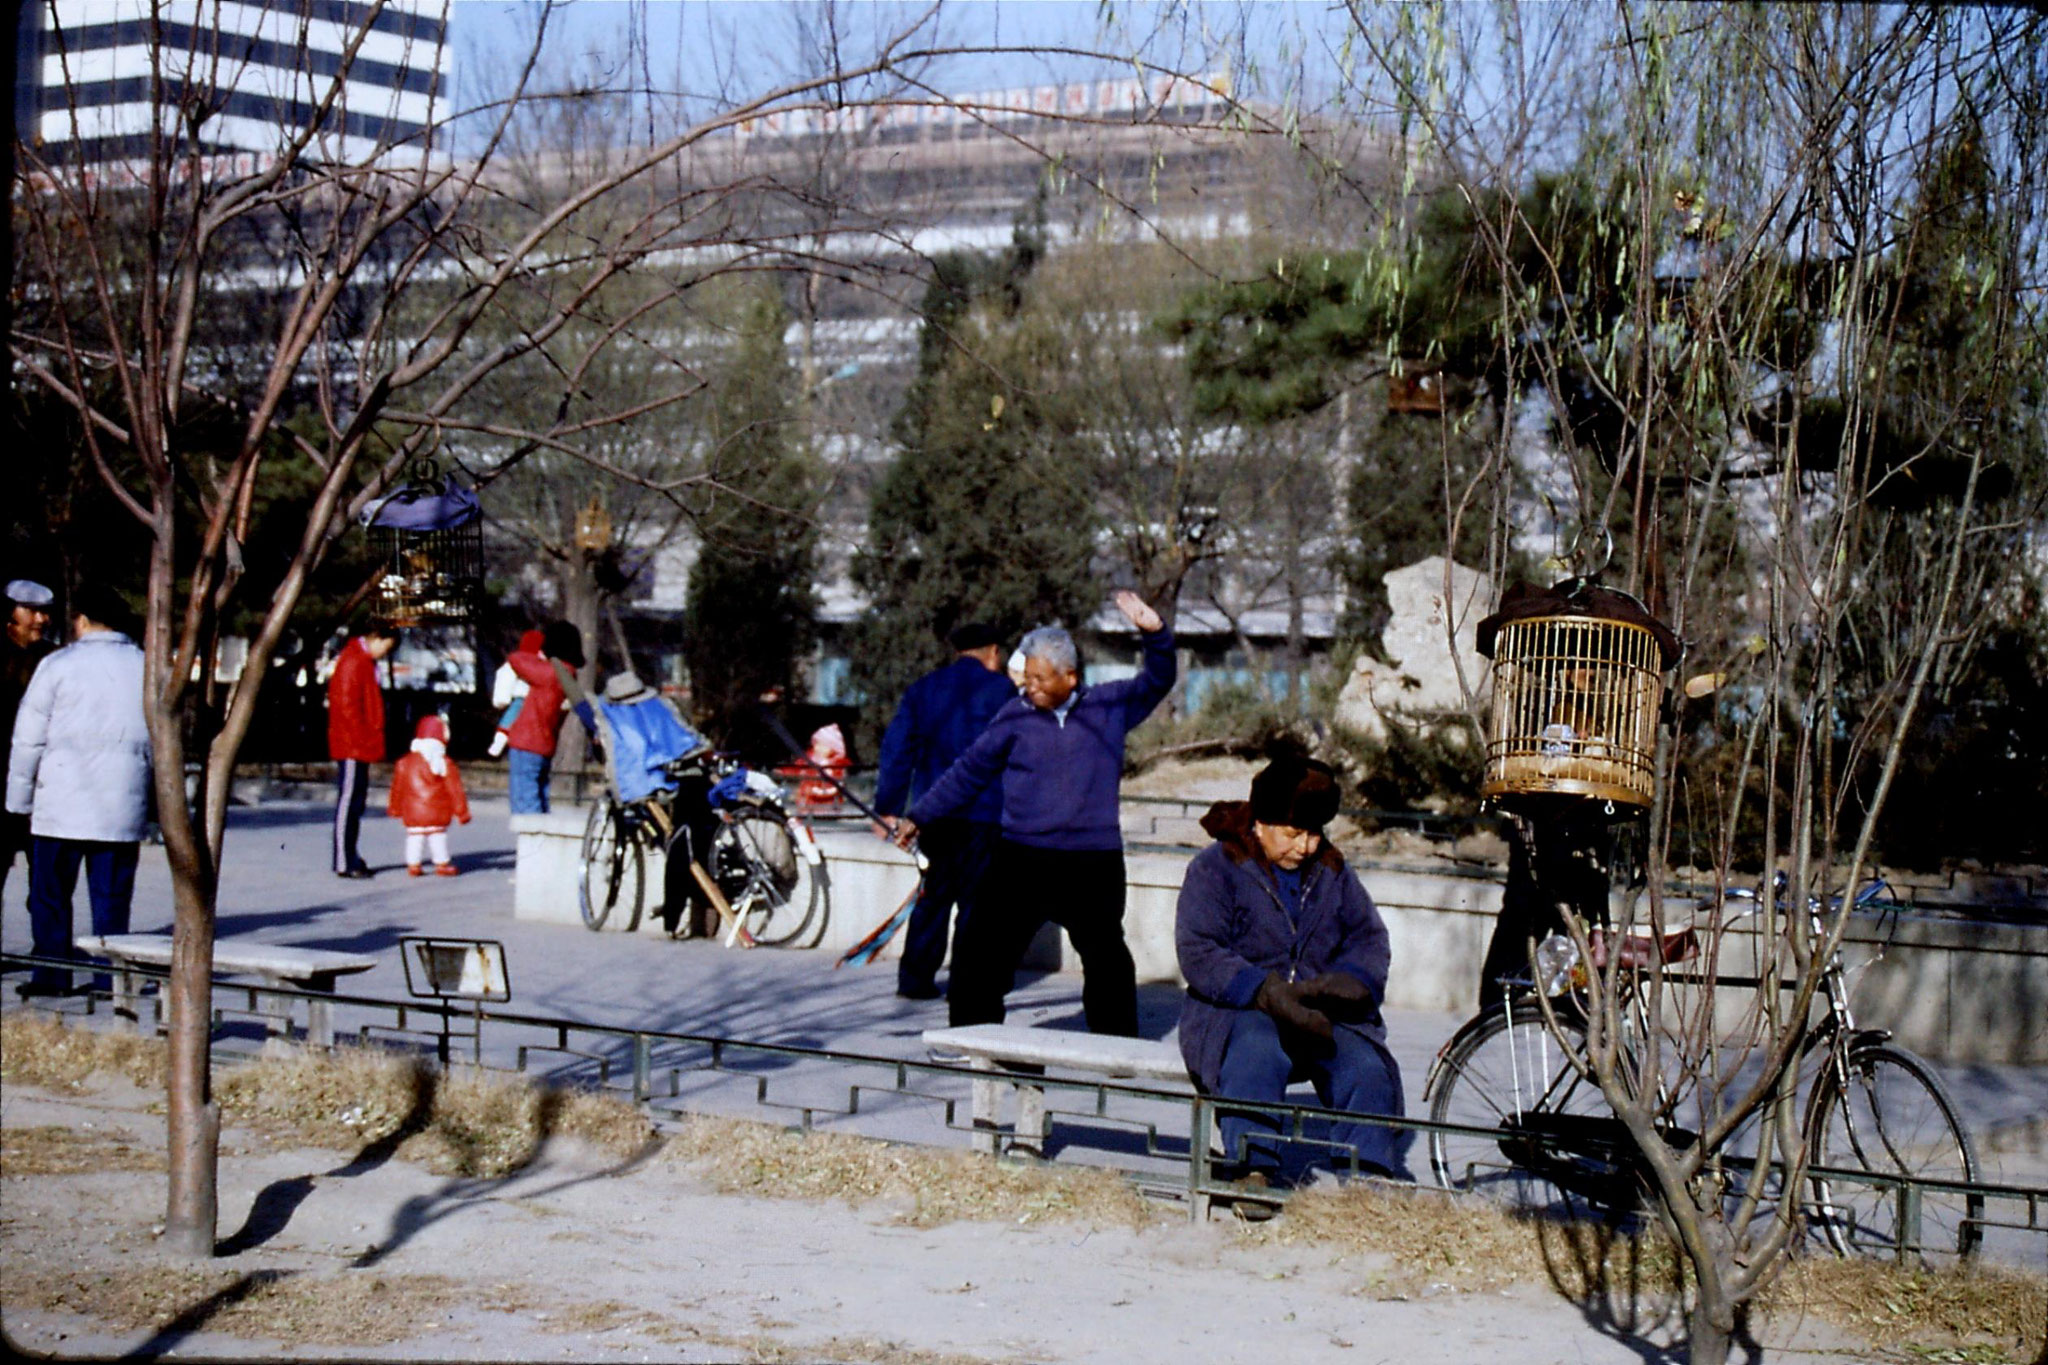 5/12/1988: 16: bird cages near China Photo